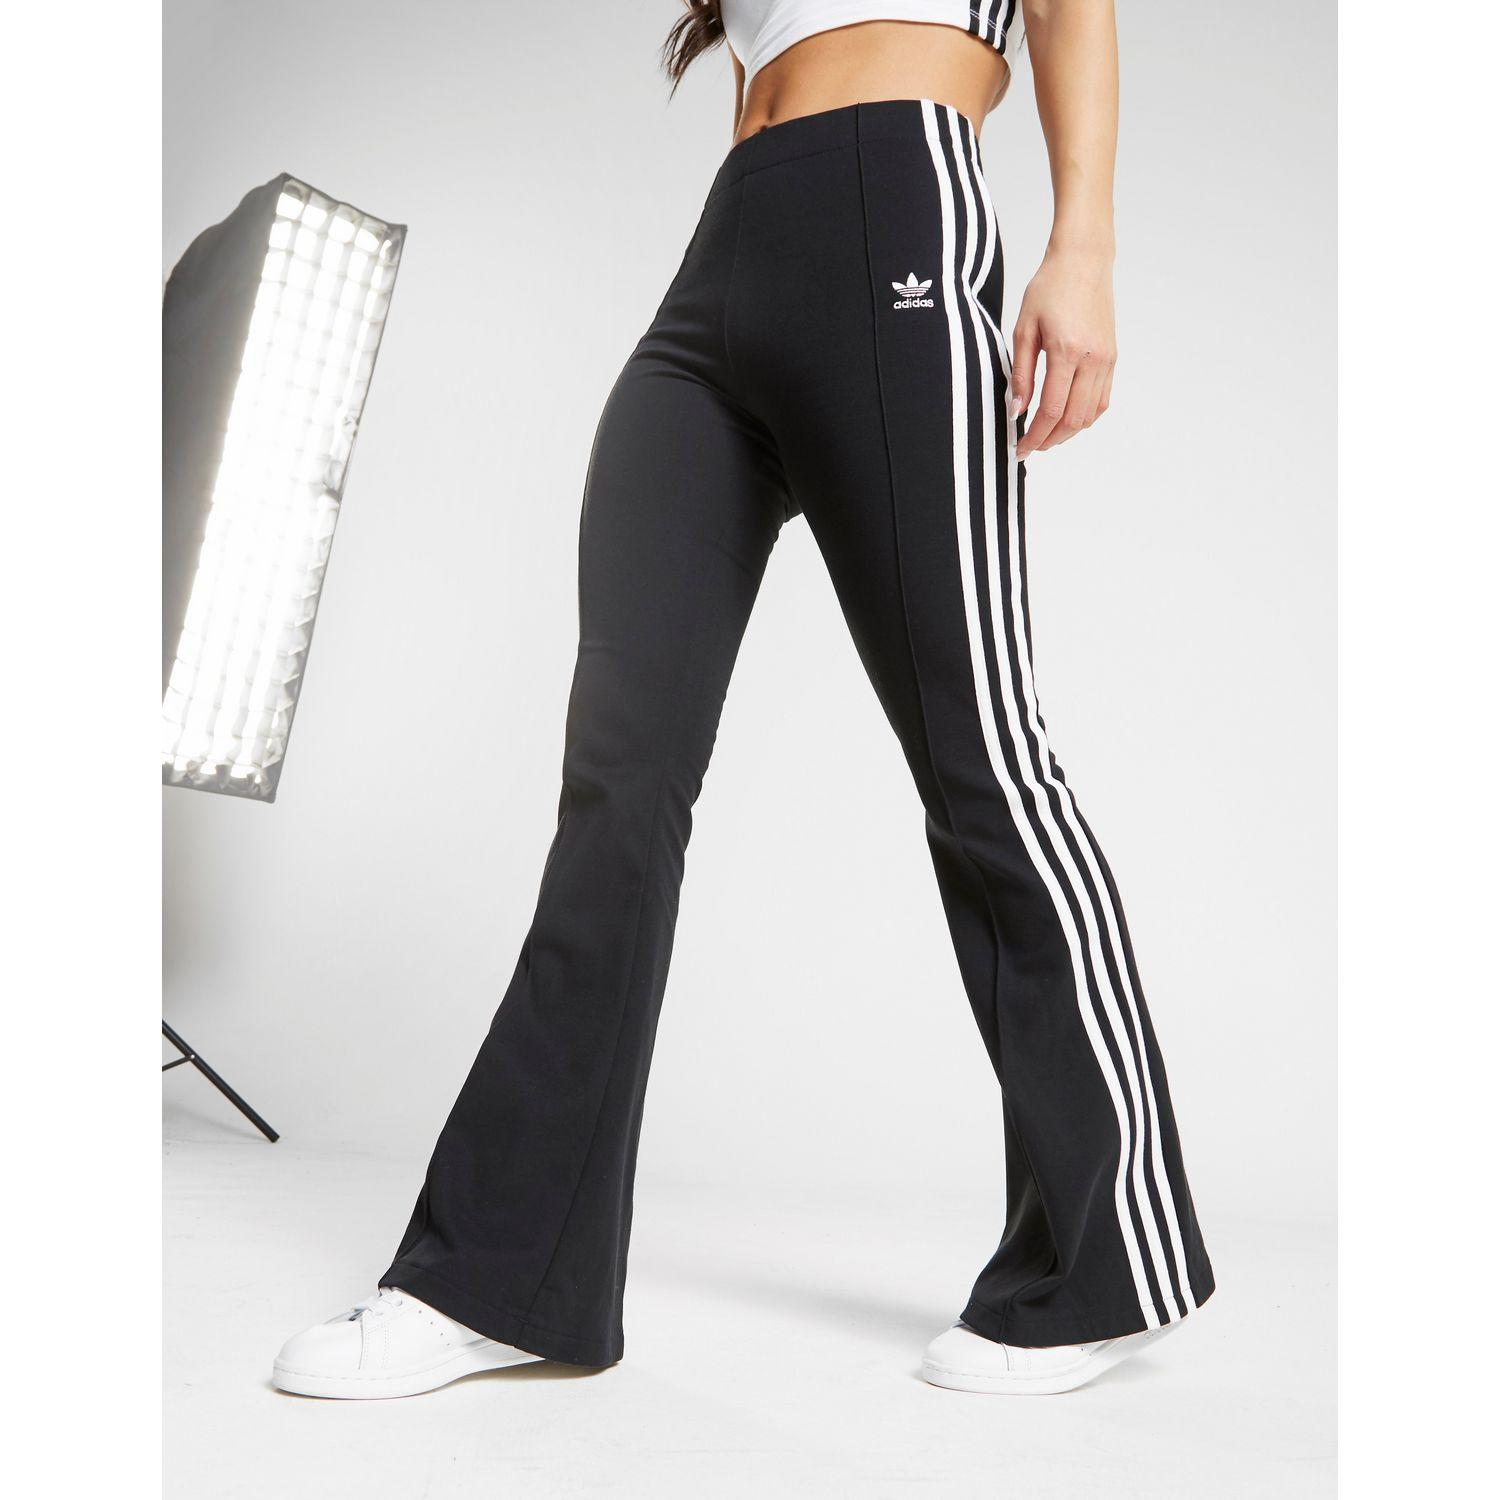 3-stripes Flared Track Pants